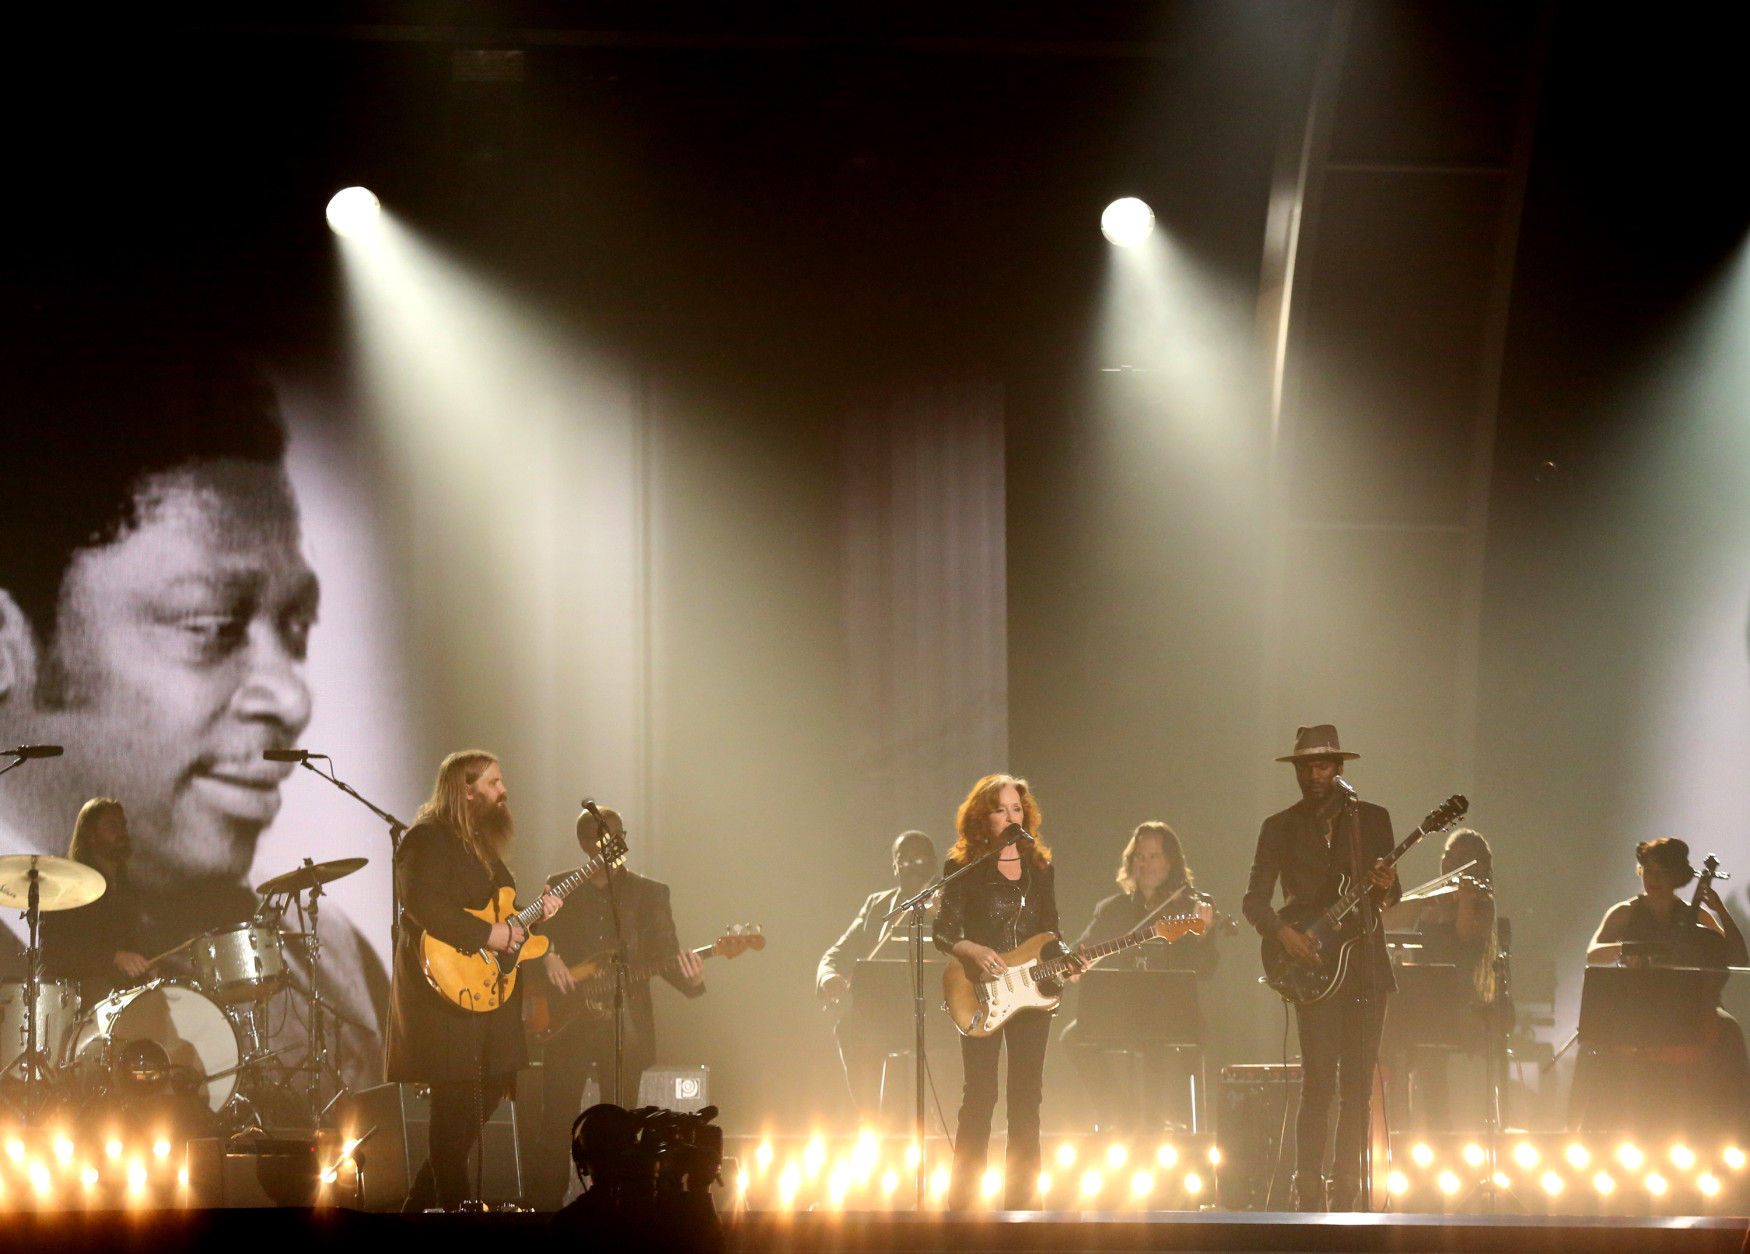 Chris Stapleton, from left, Bonnie Raitt, and Gary Clark Jr. perform a tribute to B.B. King at the 58th annual Grammy Awards on Monday, Feb. 15, 2016, in Los Angeles. (Photo by Matt Sayles/Invision/AP)